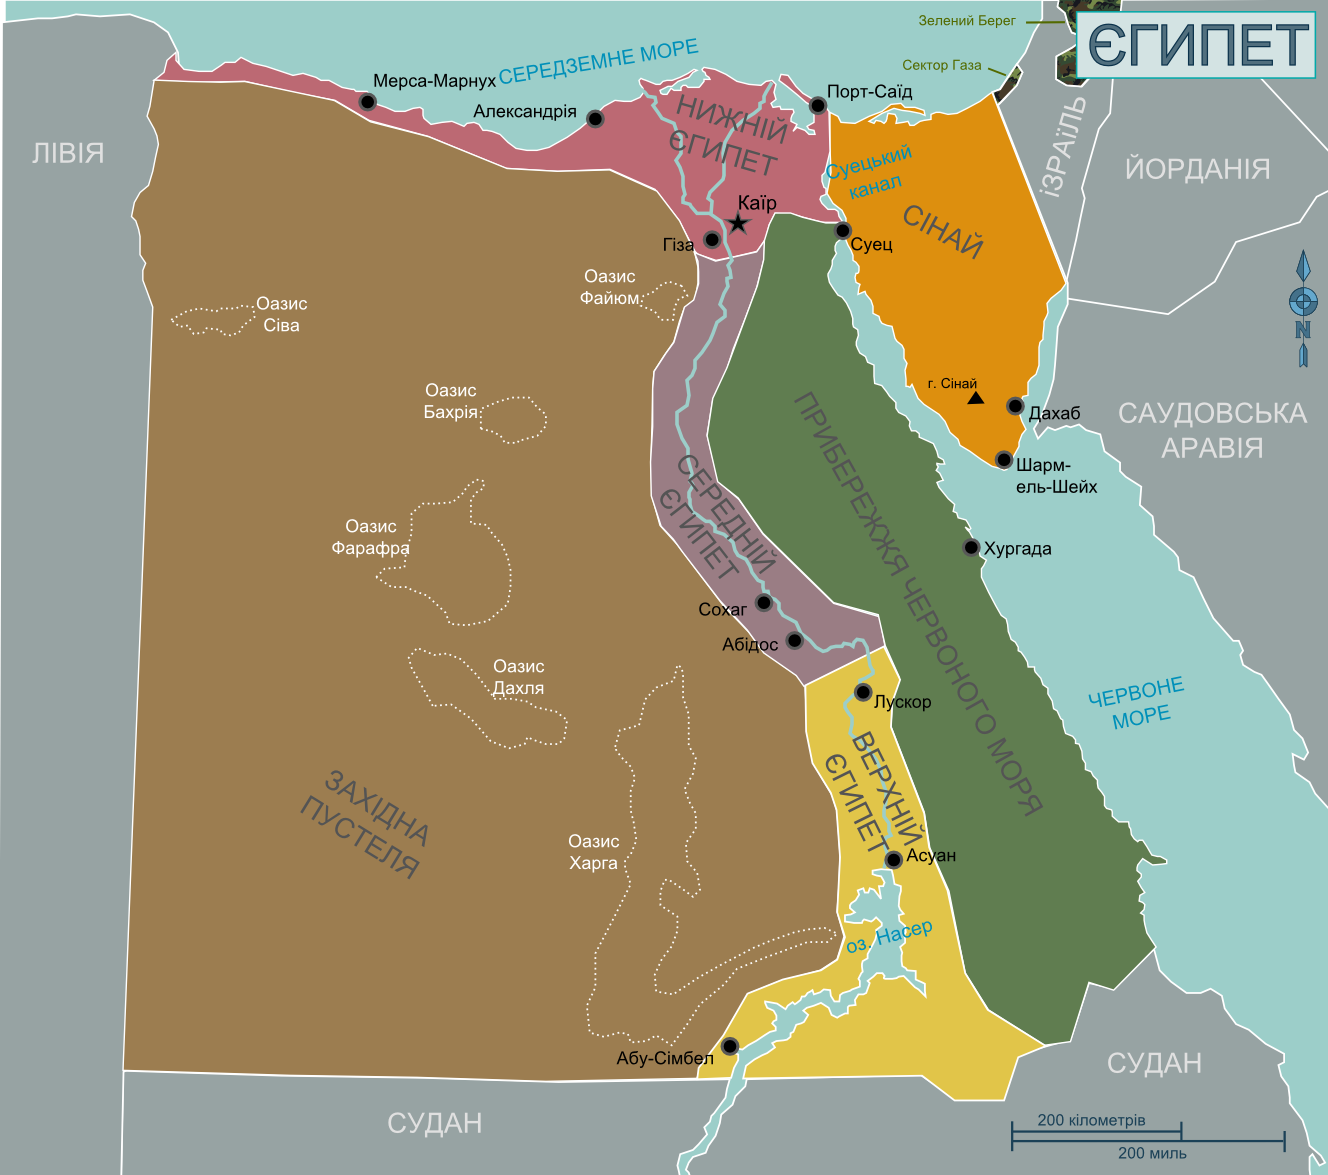 FileMap Of Egypt Ukpng Wikimedia Commons - Map of egypt and uk